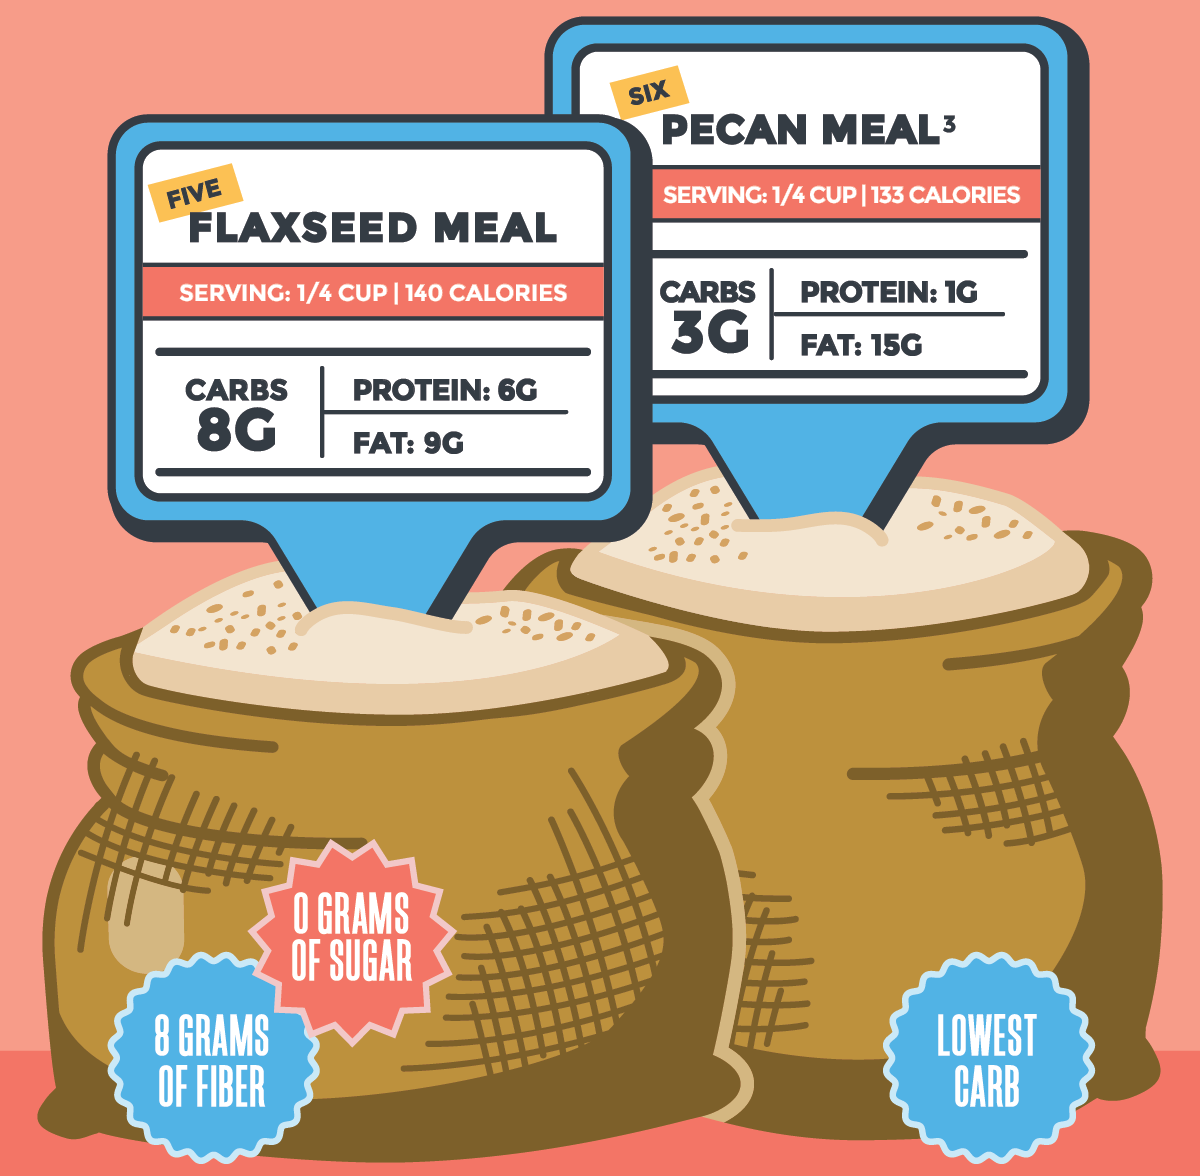 graphic illustration of flaxseed meal and pecan meal on a pink background